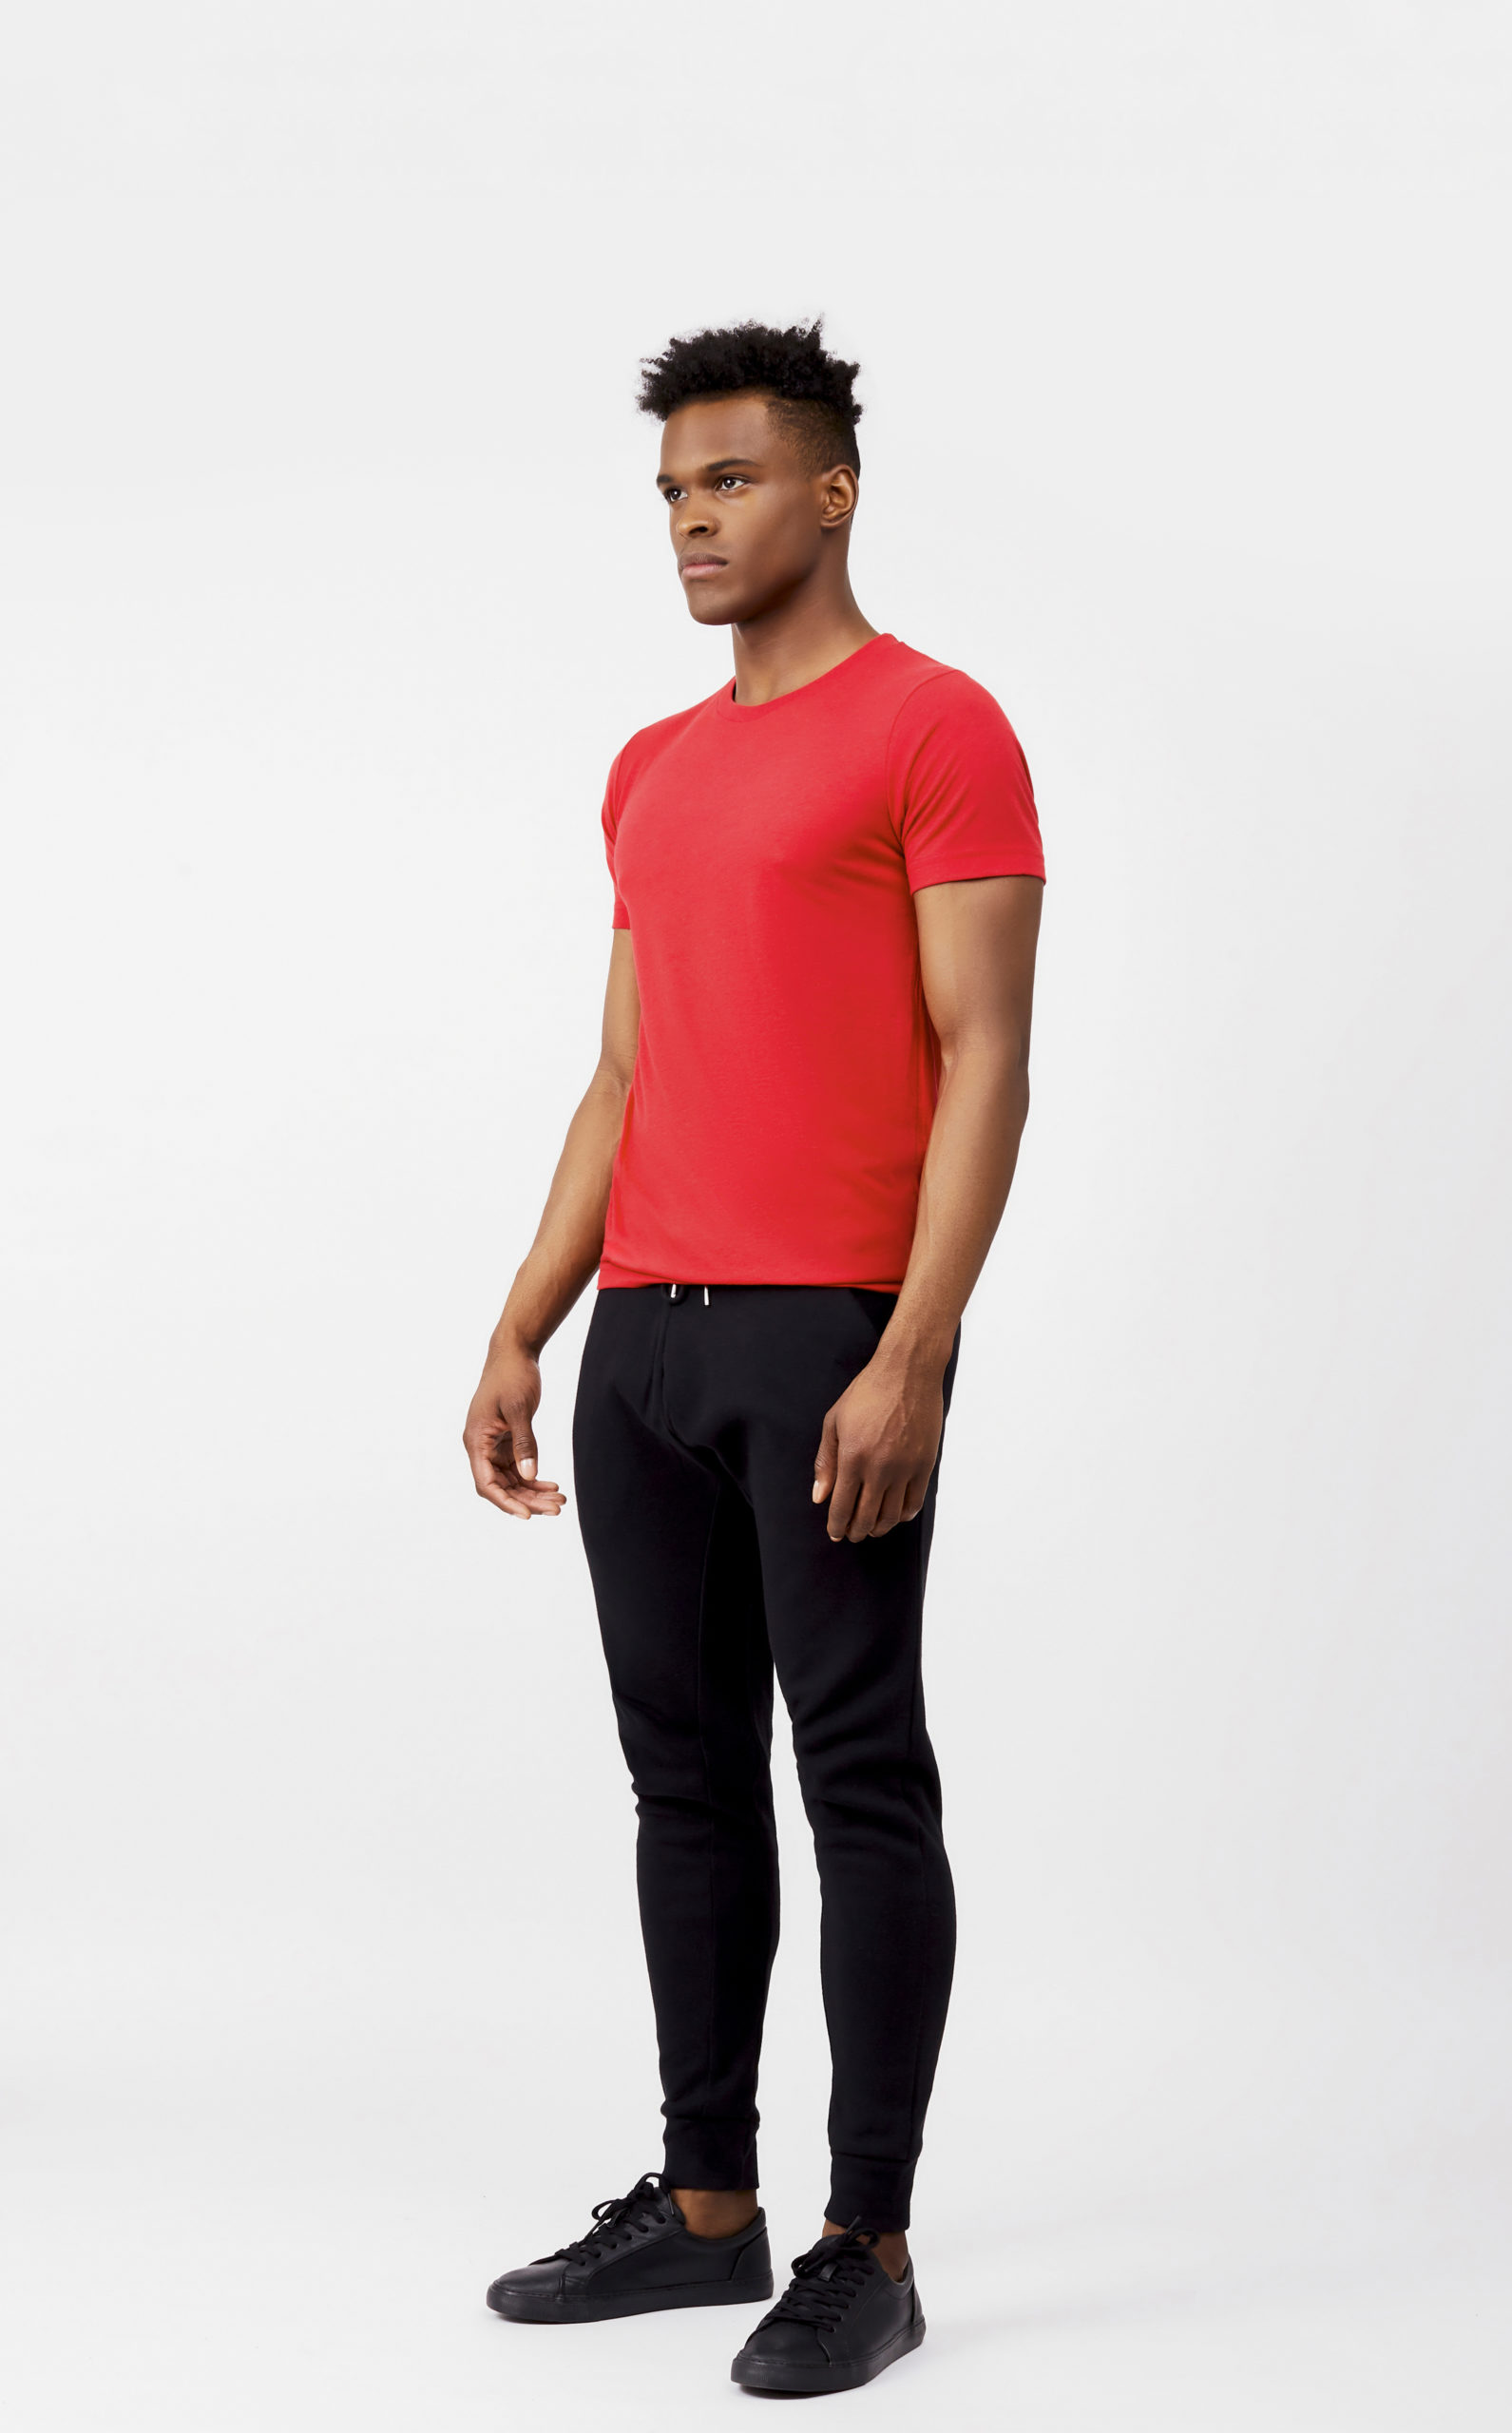 Gavenicks resizing 00005 EmptyName 21 scaled - CREWNECK TEE RED